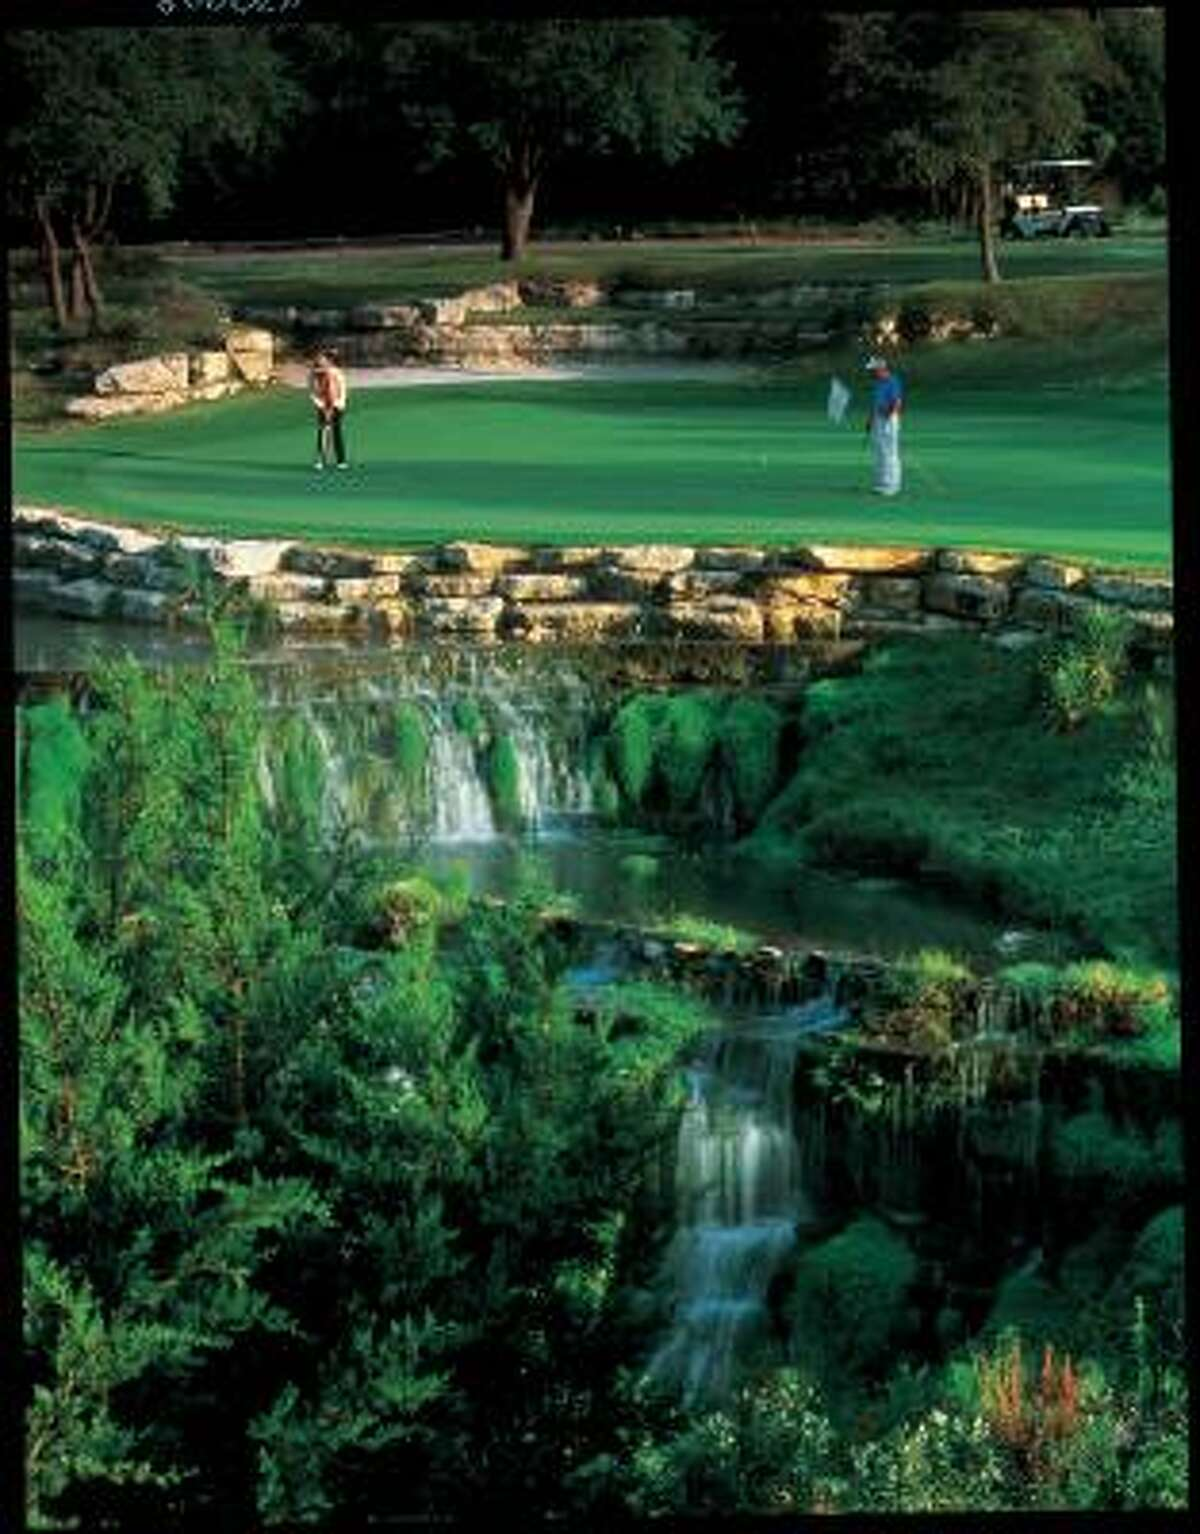 The heaven of hazards on the award-winning Fazio Foothill course at the Barton Creek Resort in Austin, TX